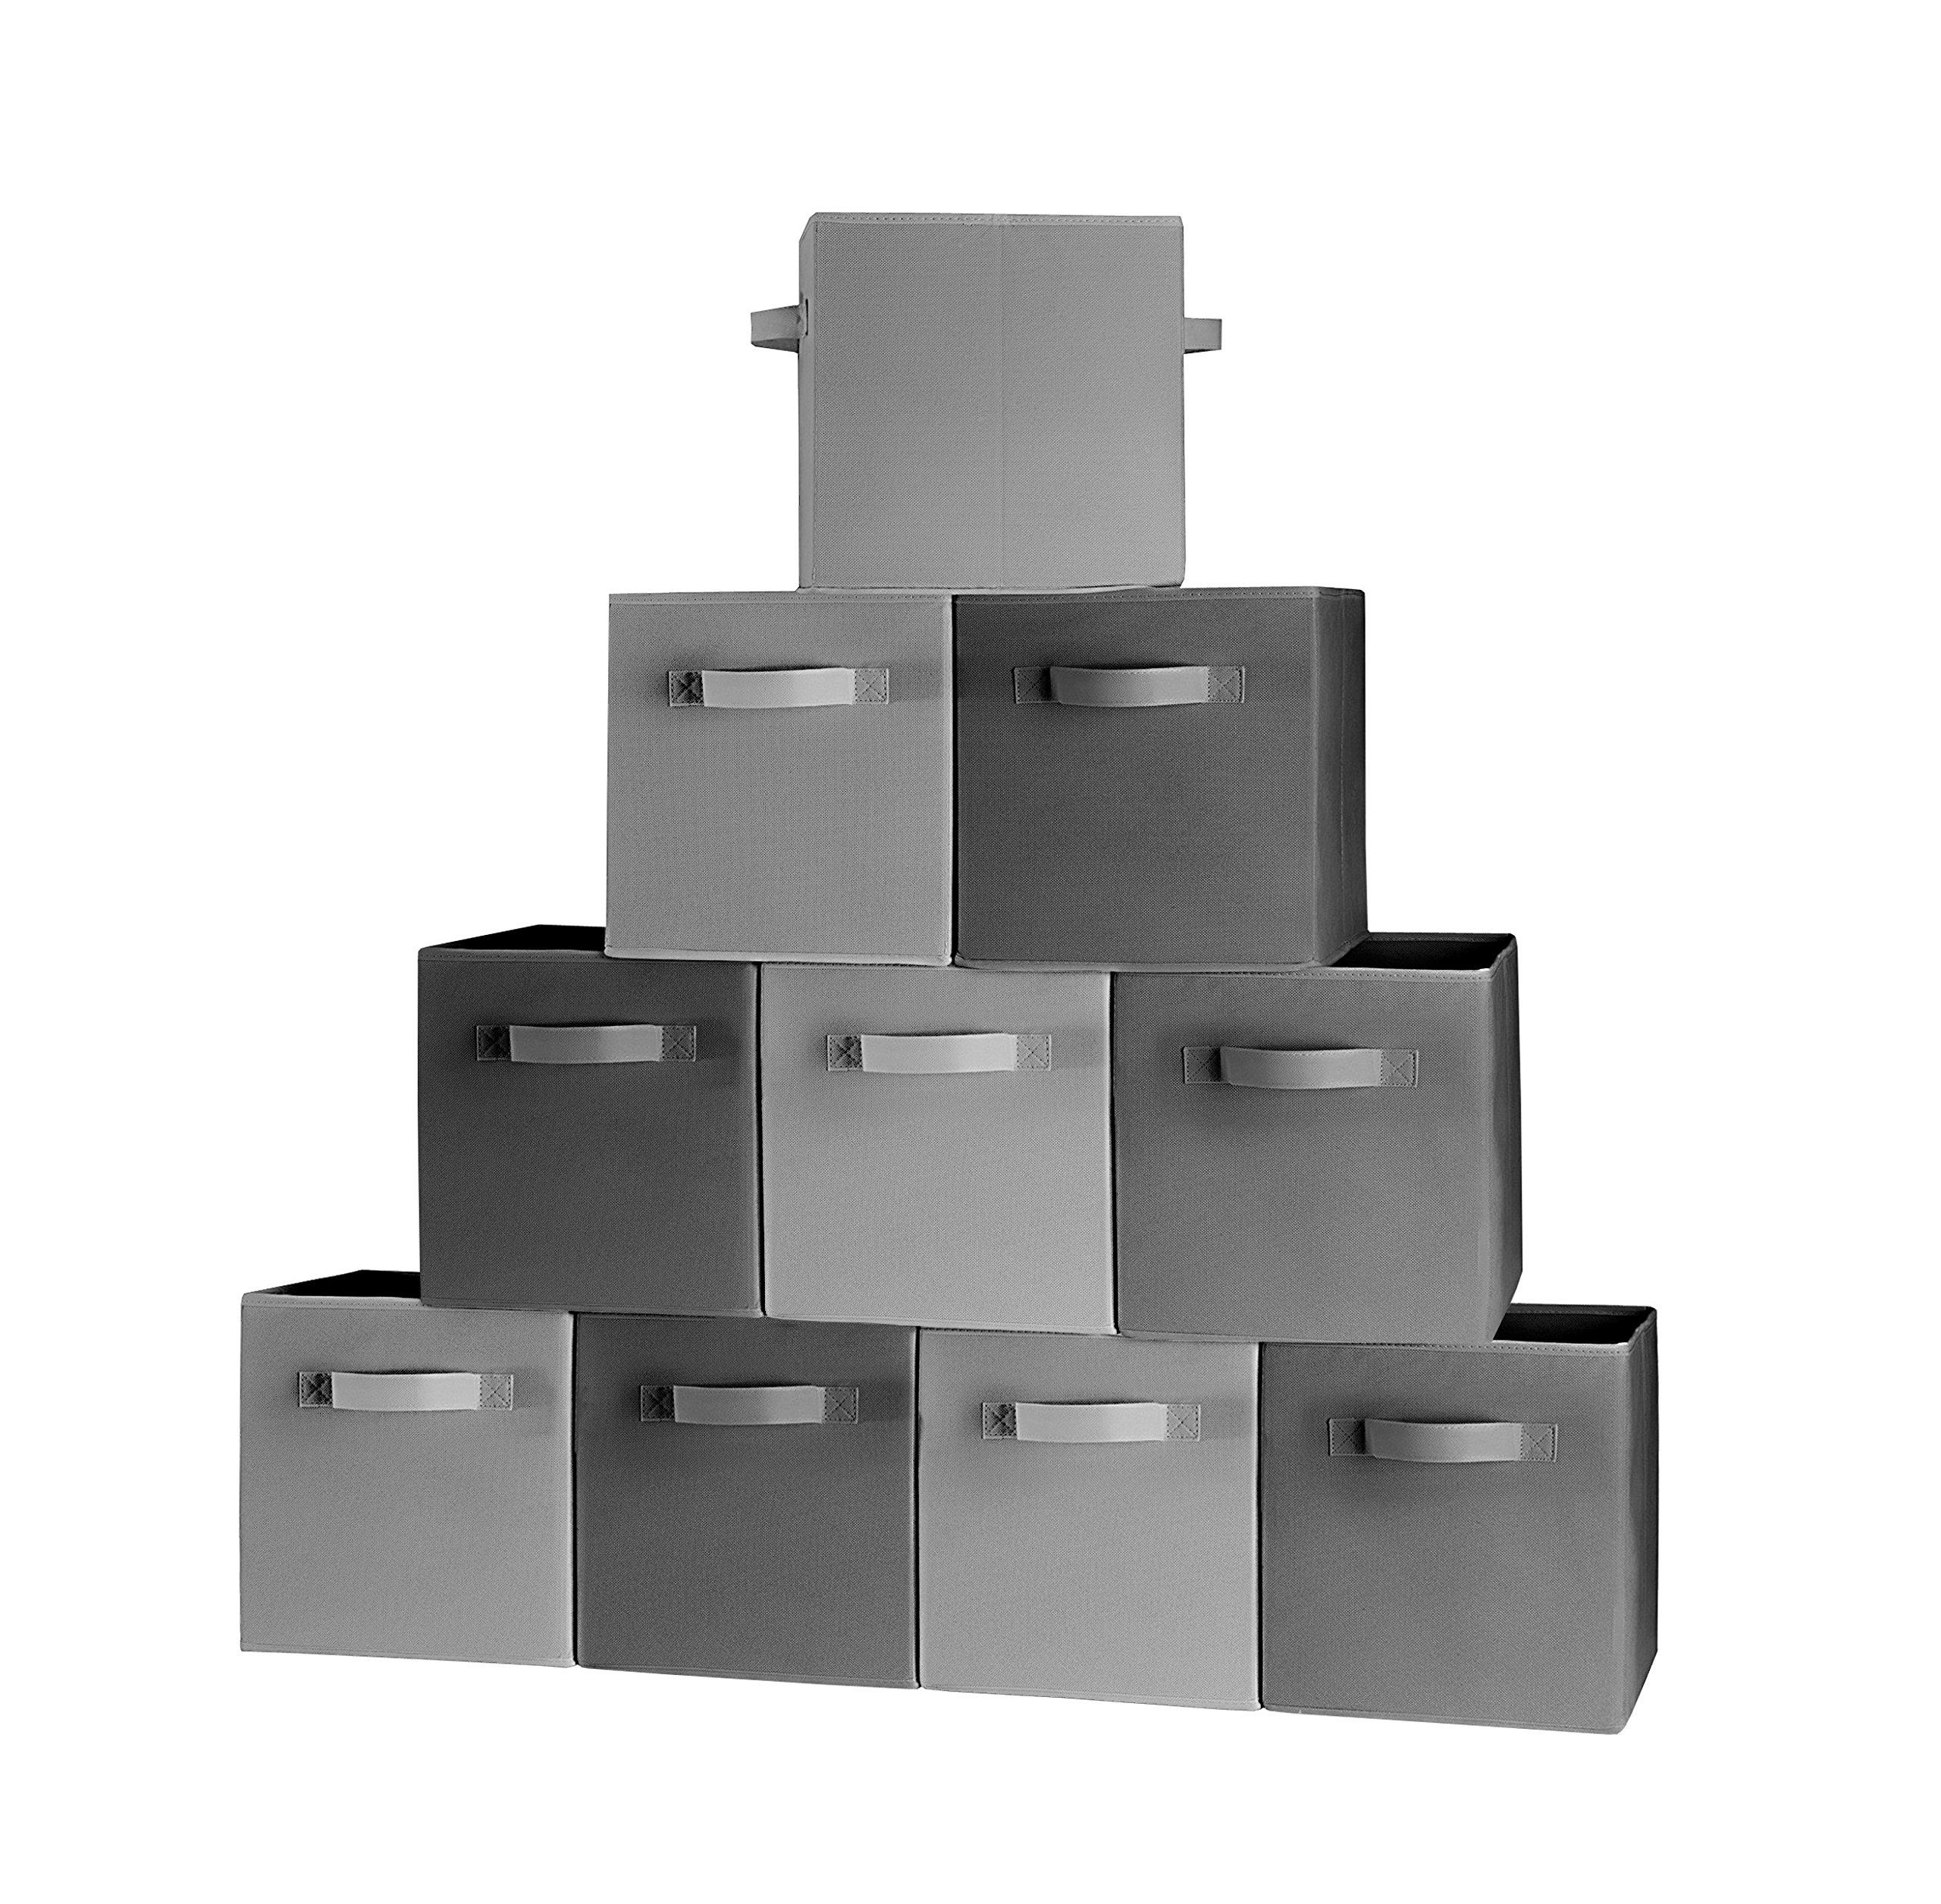 ( 10-Pack, 5 Grey 5 Black) Storage Bins, Containers, Boxes, Tote, Baskets  Collapsible Storage Cubes For Household Organization   Fresh Jumbo Fabric & Cardboard    (5 Black, 5 Grey, 10)